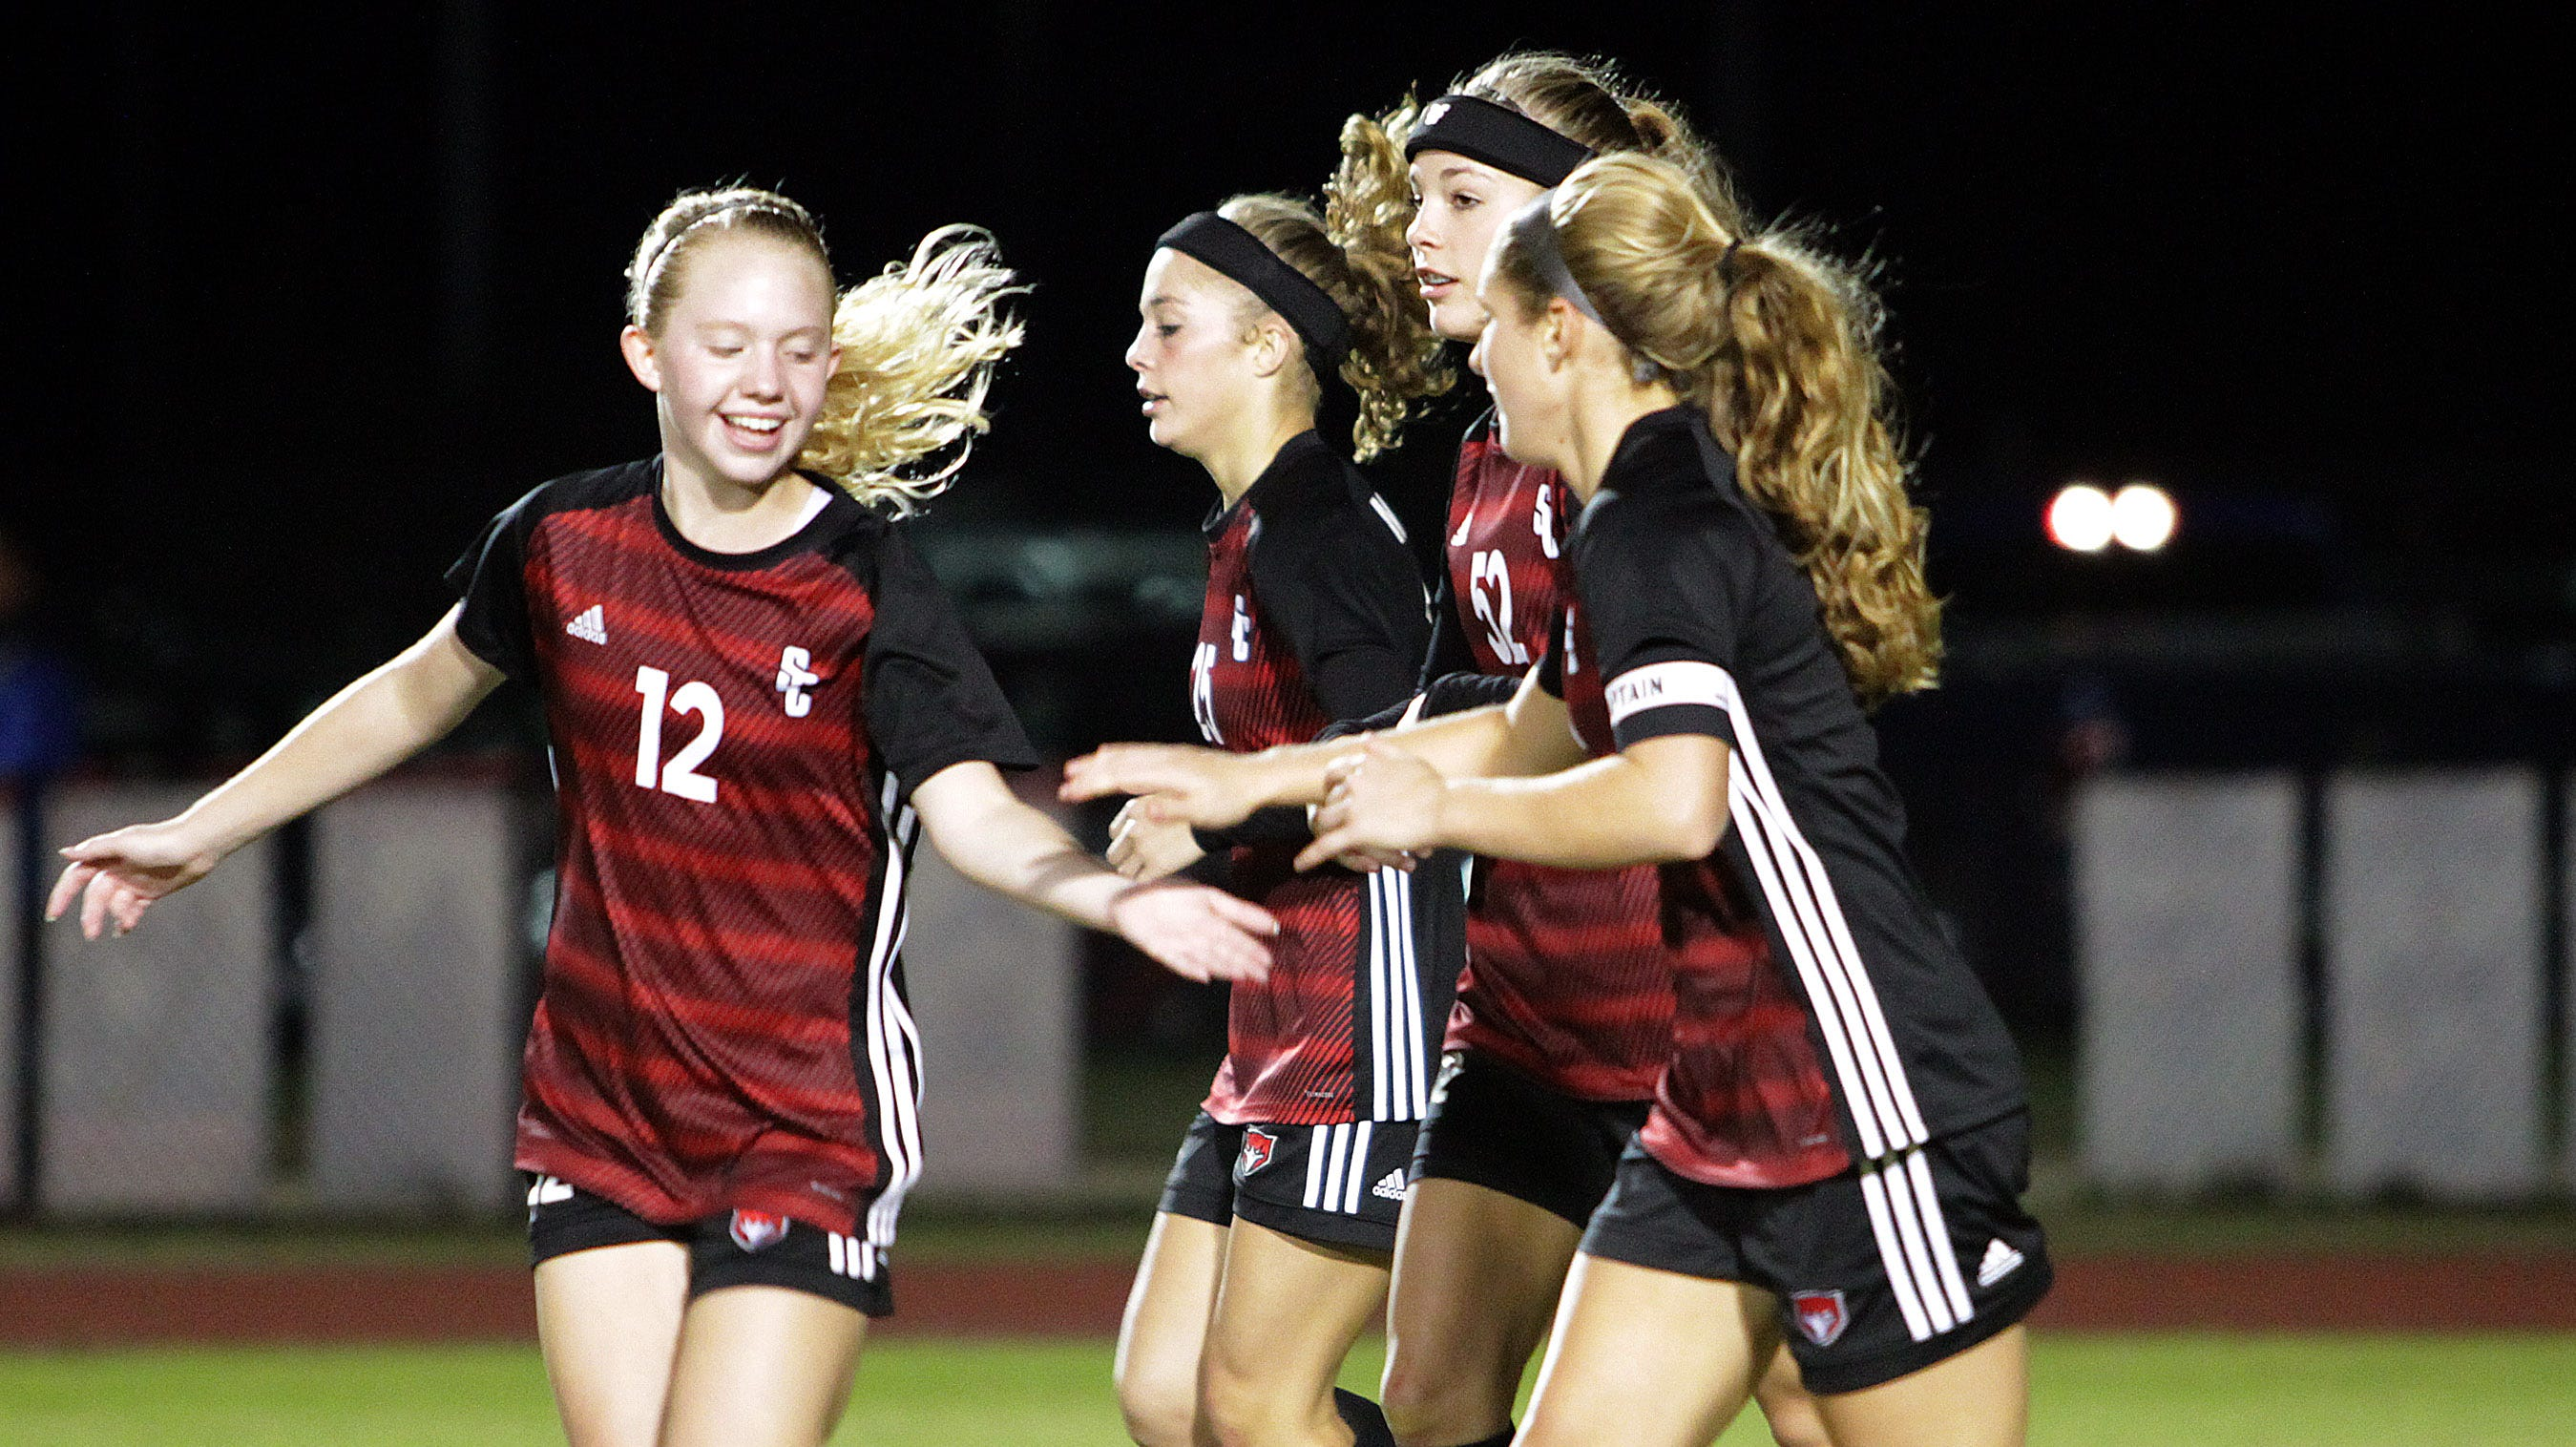 Stewarts Creek's Olivia Marlow gives fives after a Red Hawks score against Soddy-Daisy on Saturday, October 20, 2018.